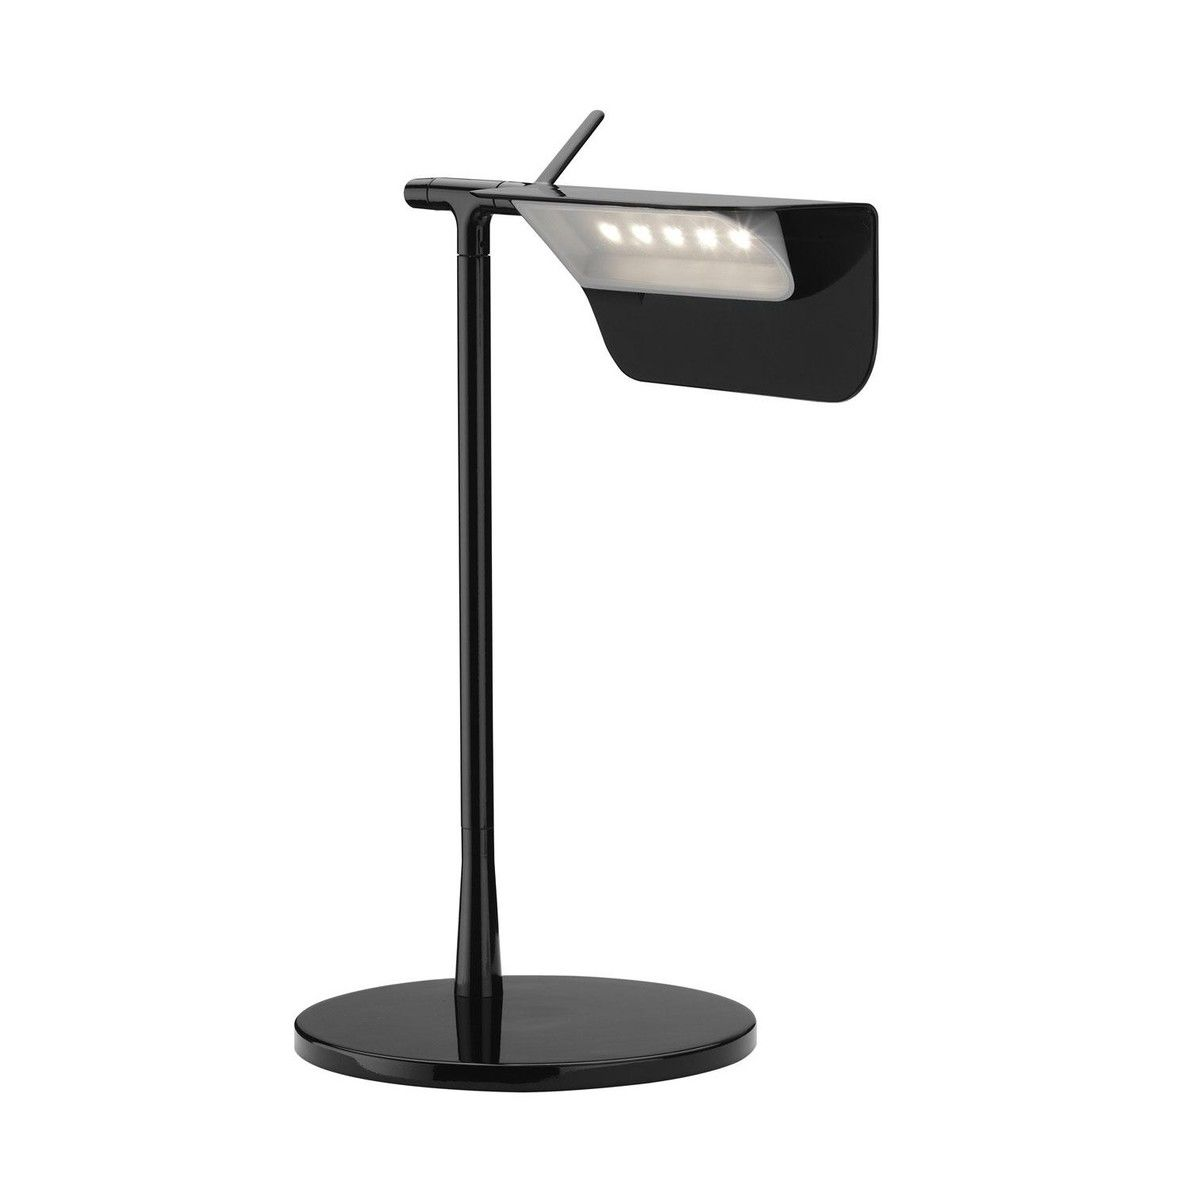 Tab t led table lamp flos ambientedirect flos tab t led table lamp mozeypictures Choice Image